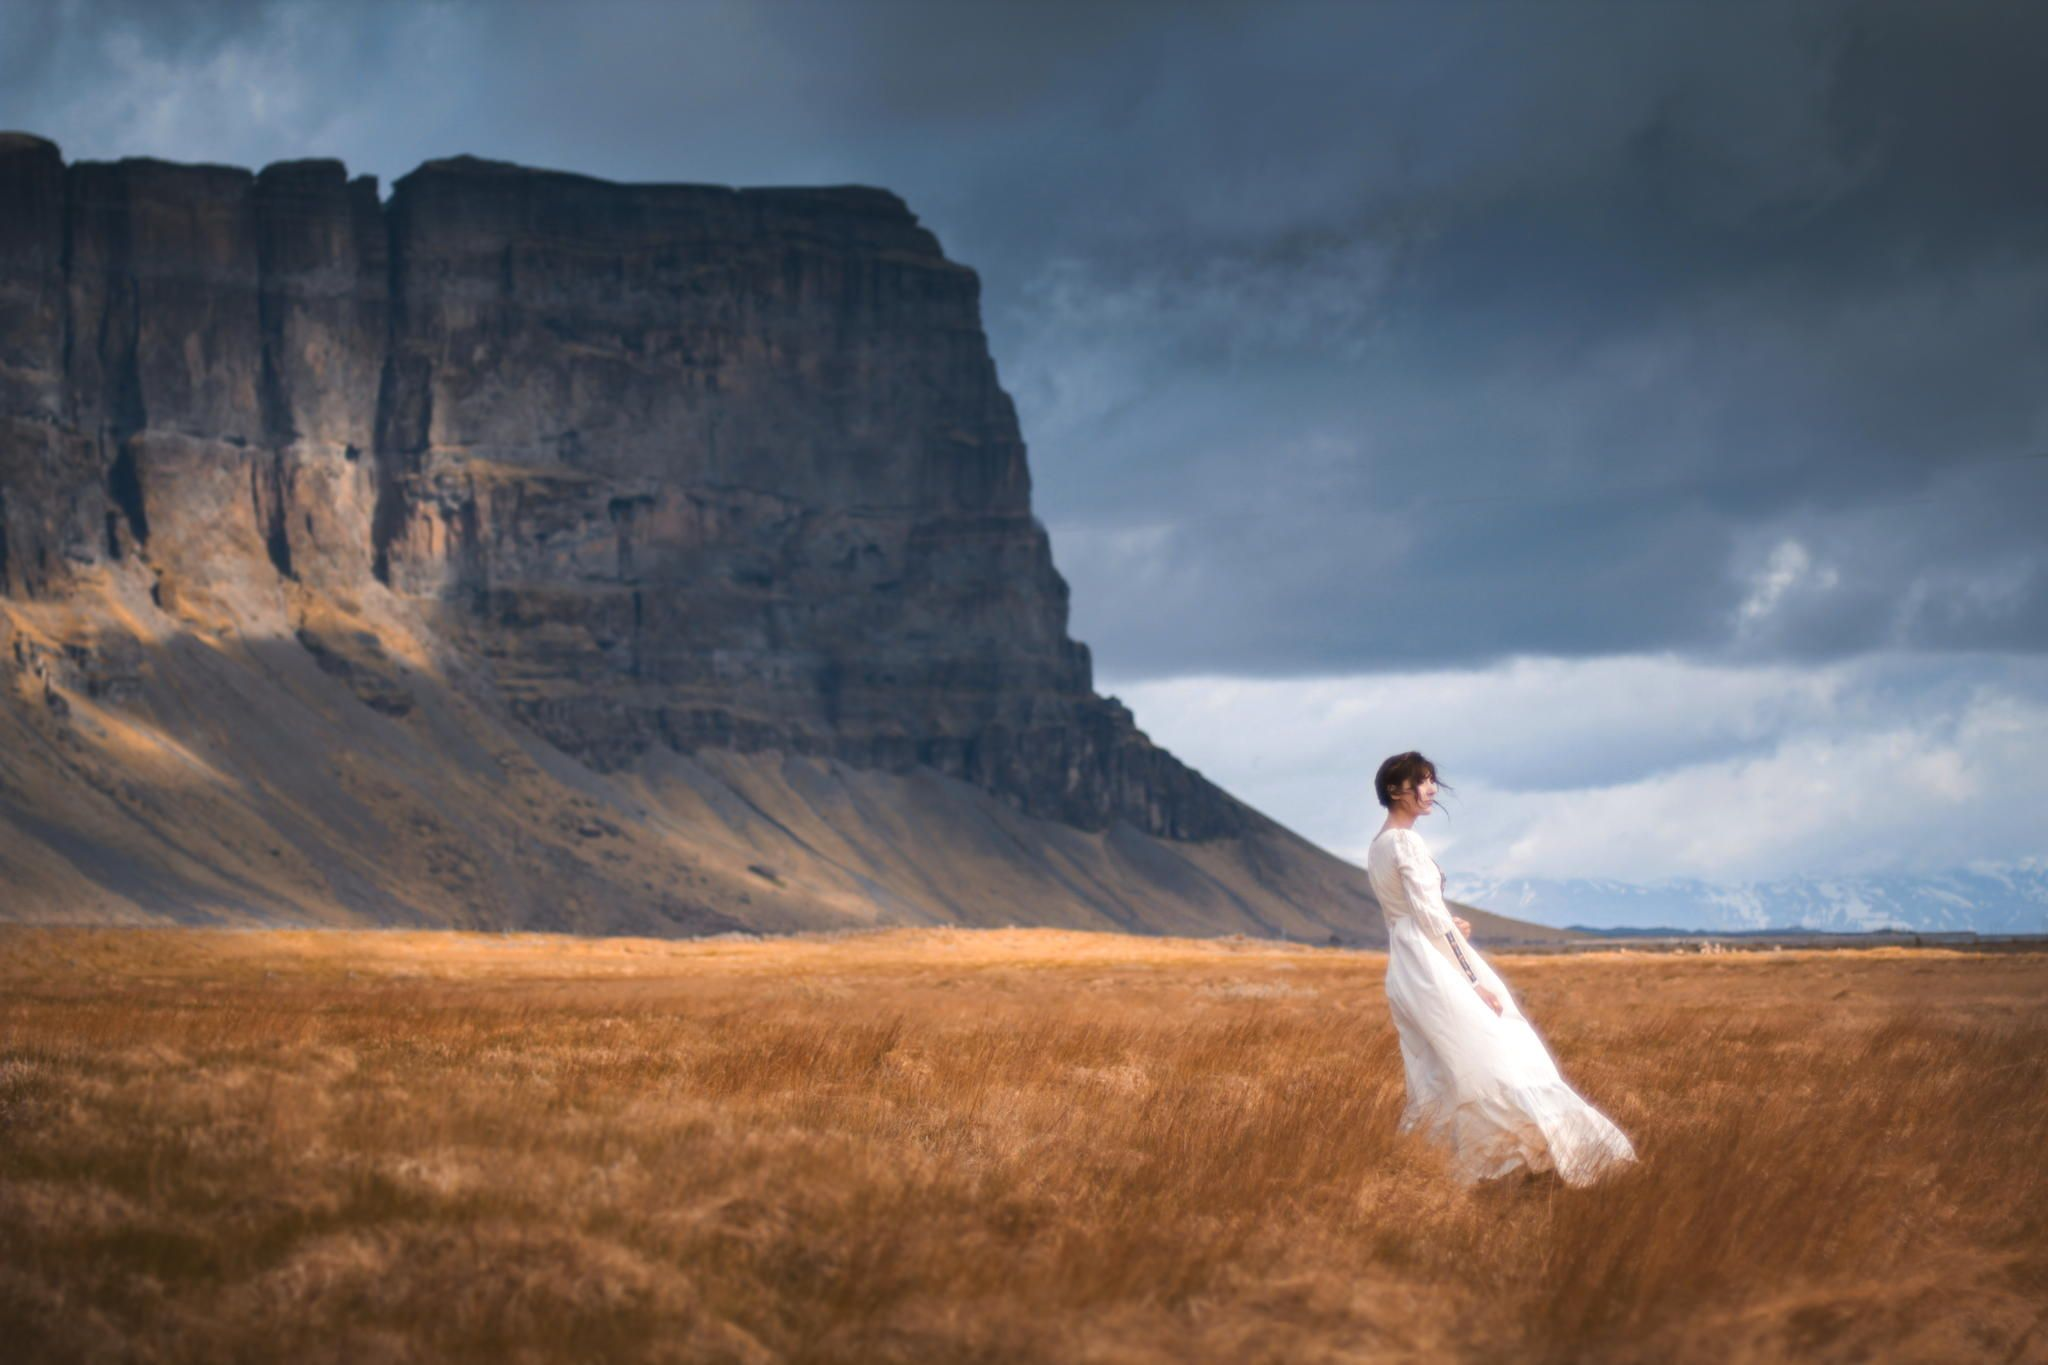 The Ever Changing Winds by Lizzy Gadd on 500px